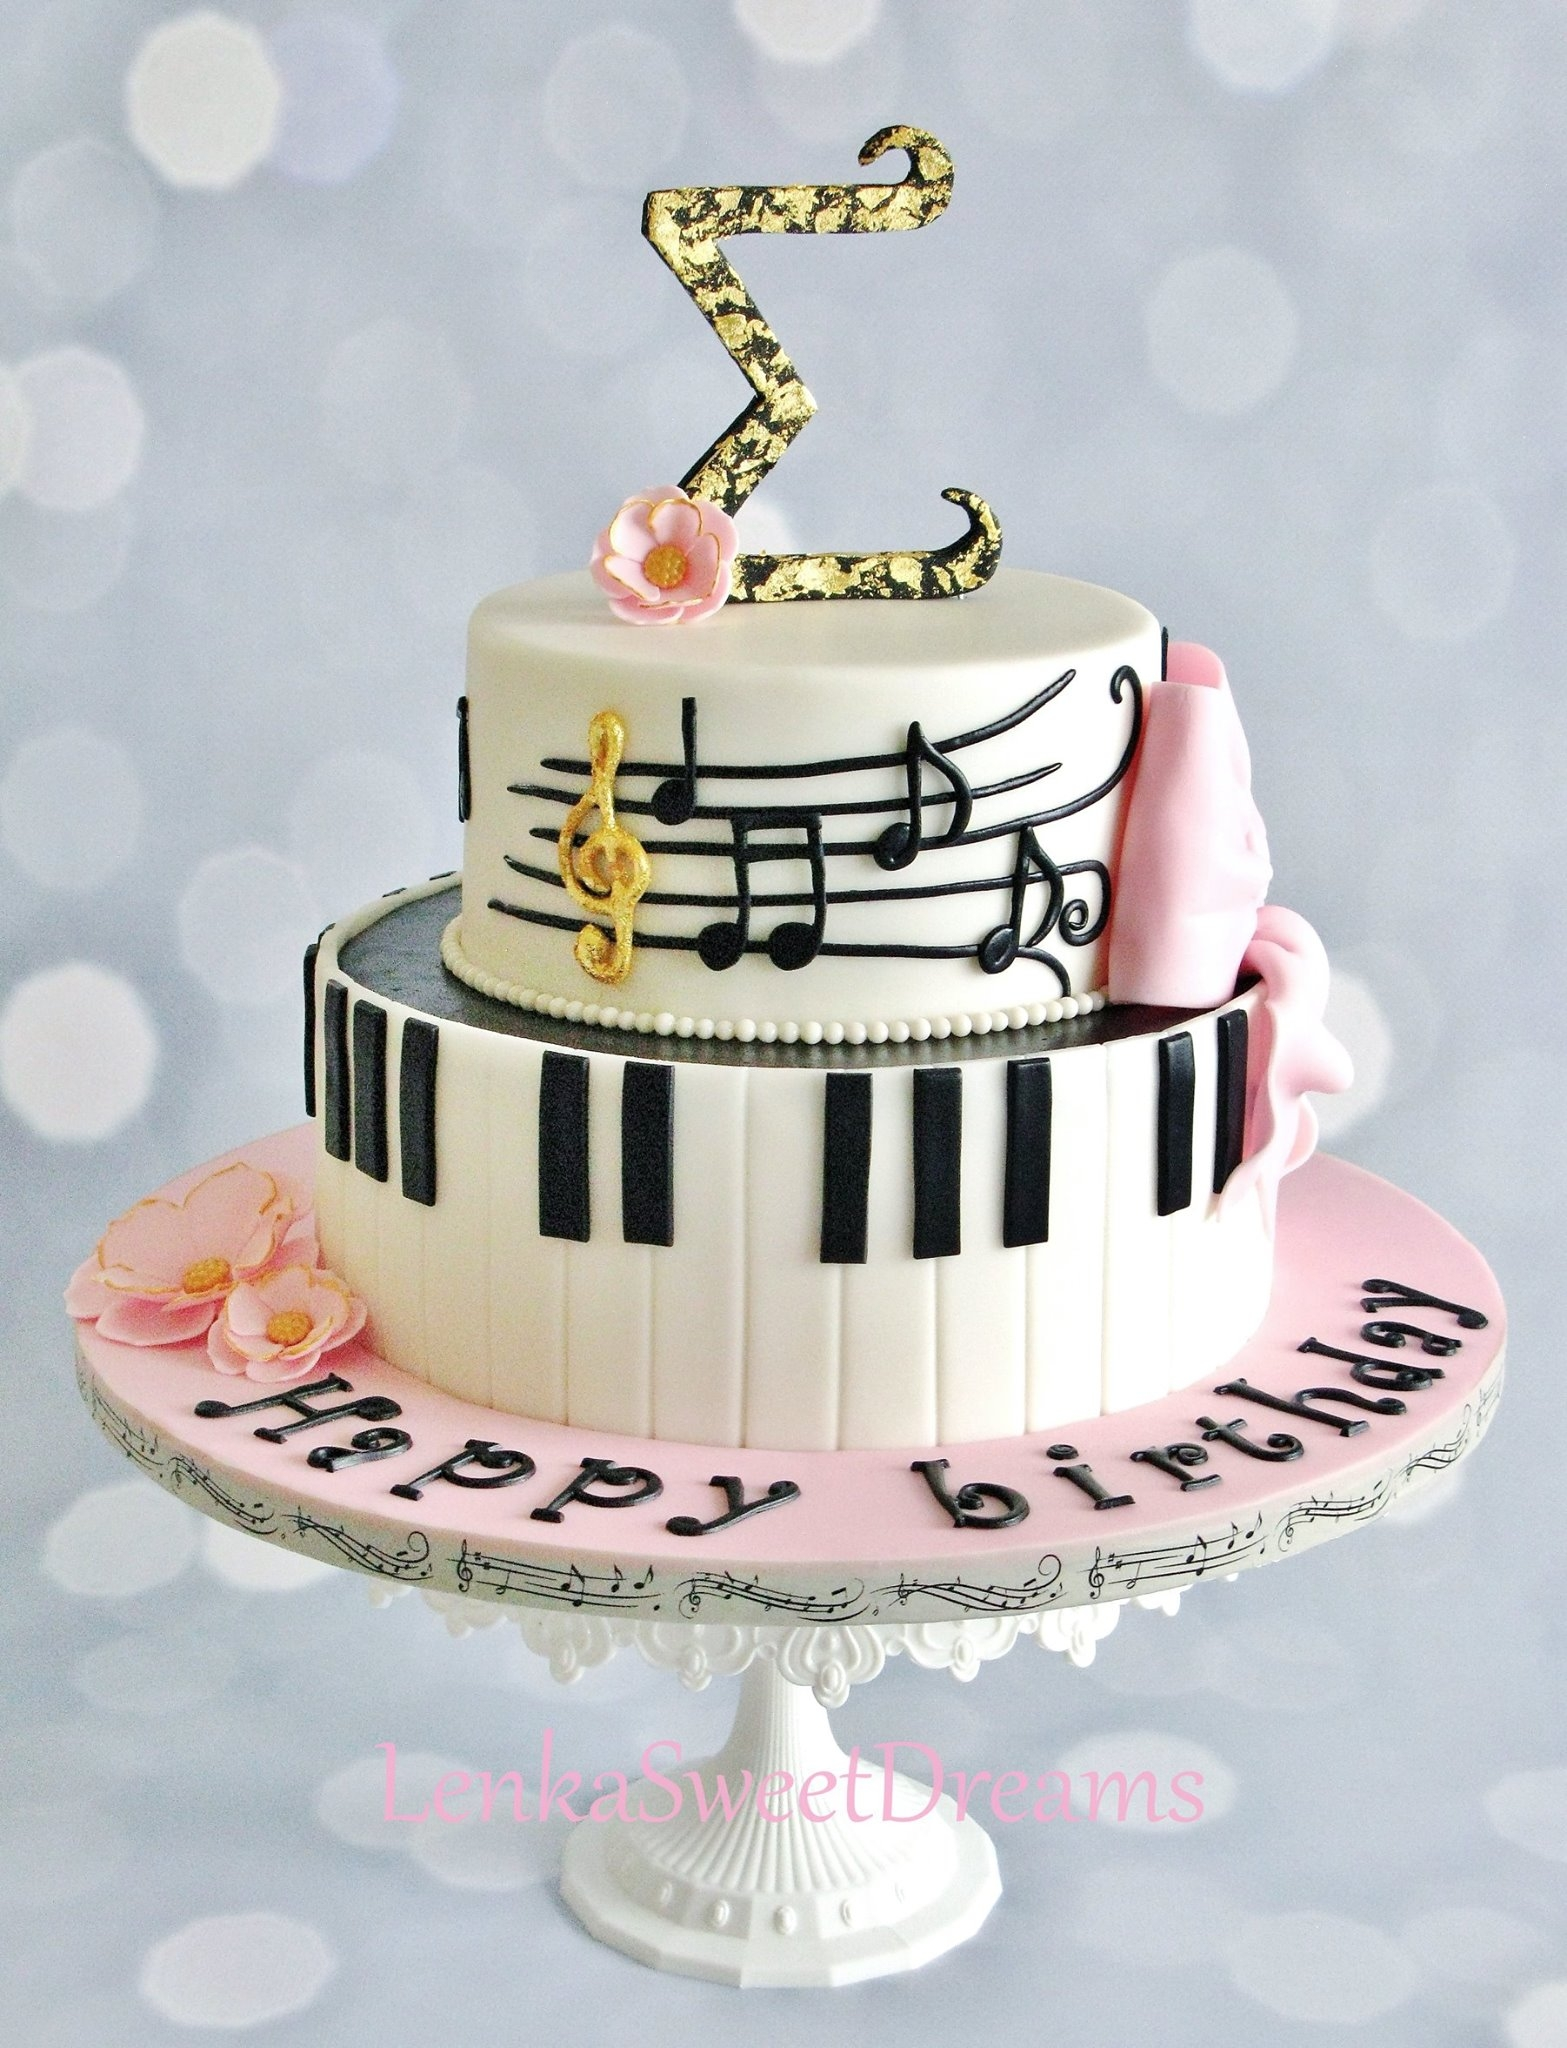 Cake Decoration Music : Piano Music Cake. - CakeCentral.com